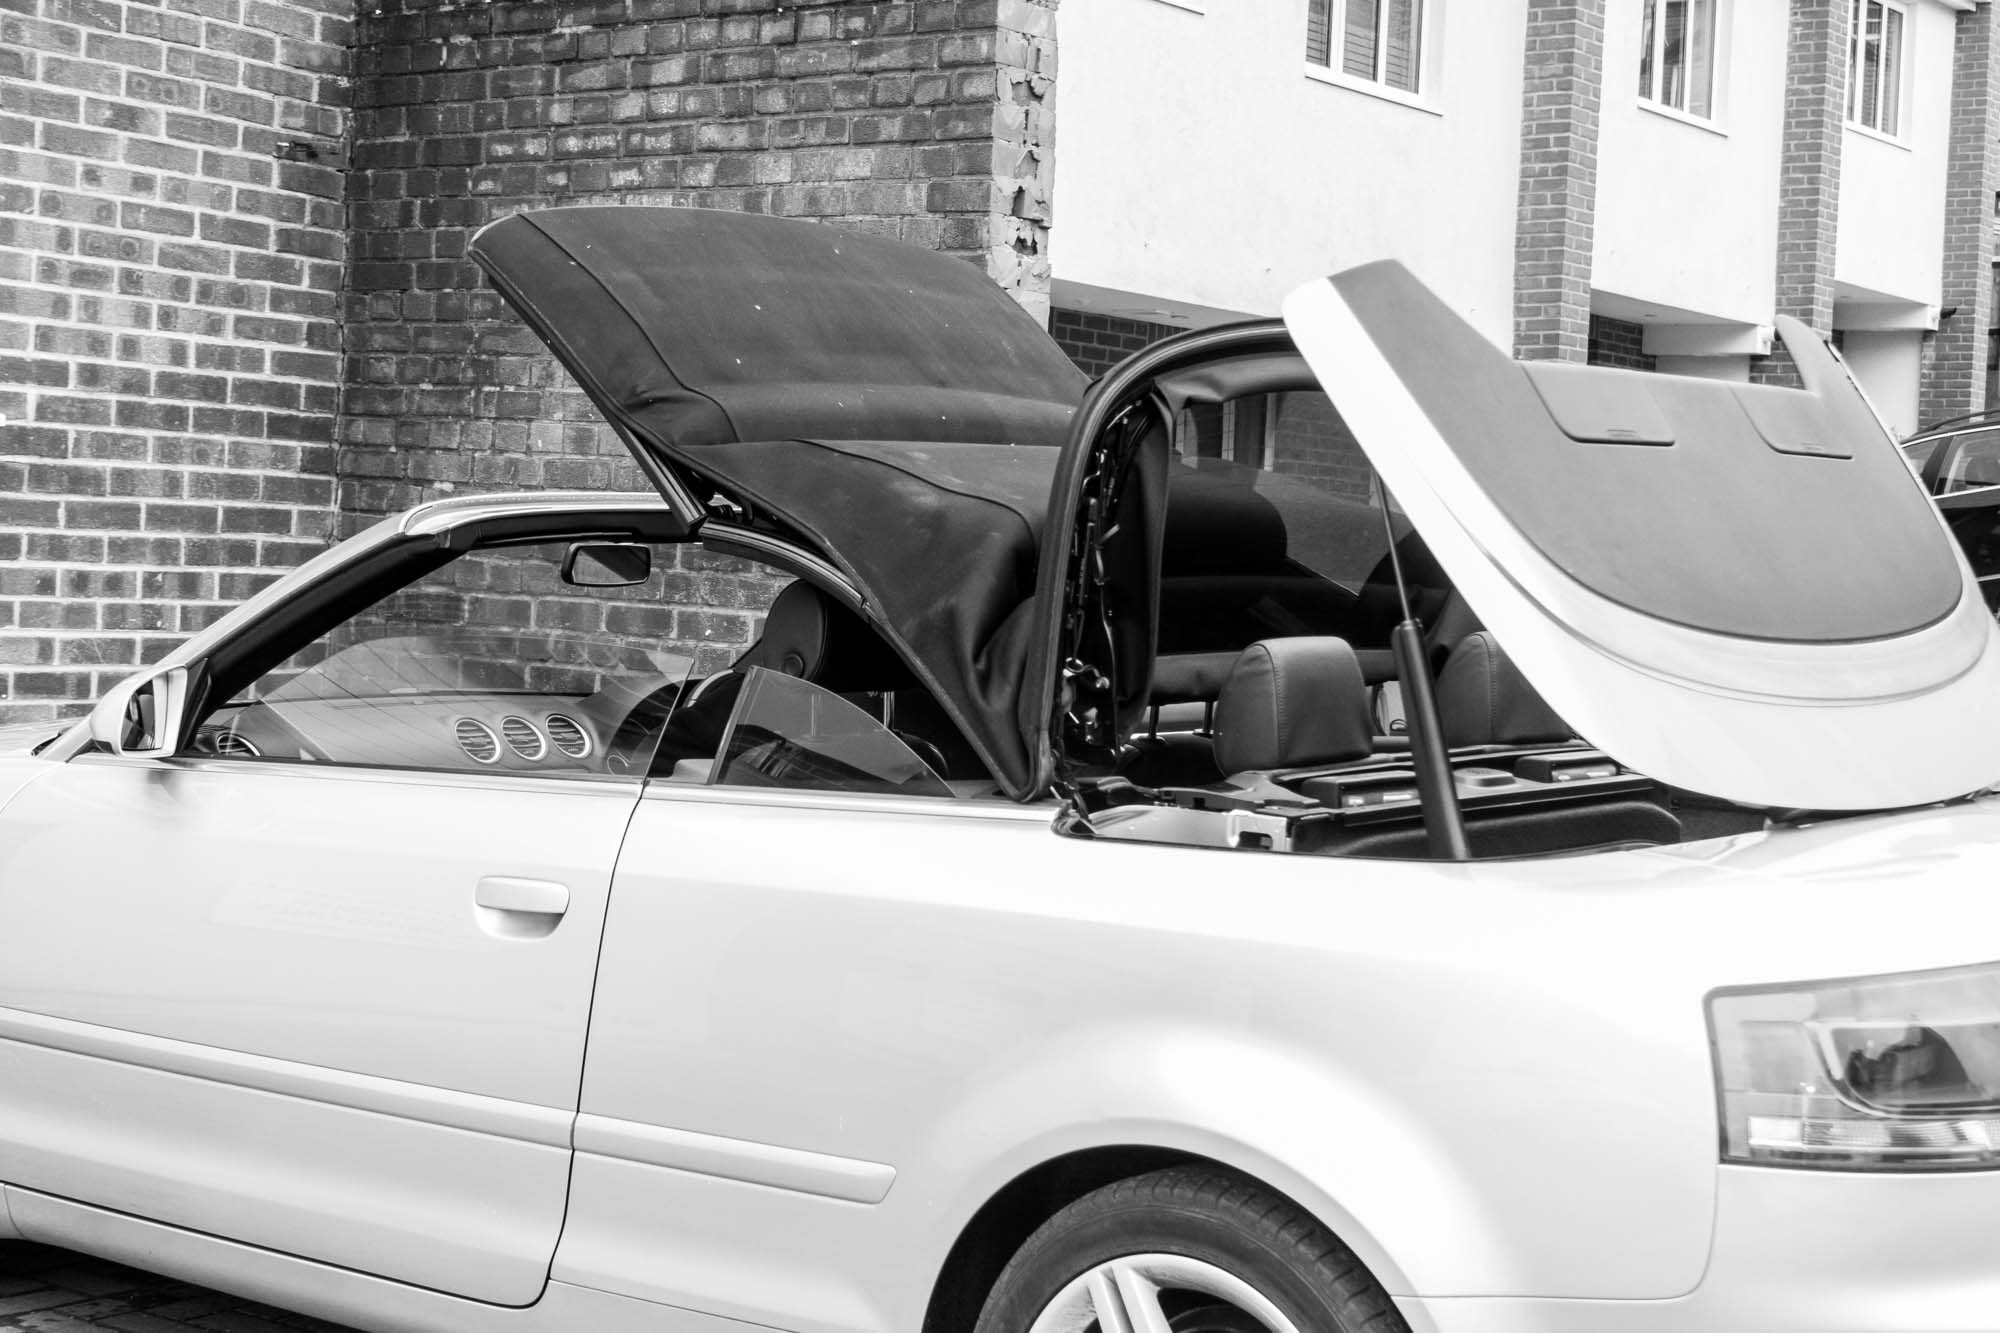 Audi A4 Convertible Roof Problems Amp Repairs Cayman Auto